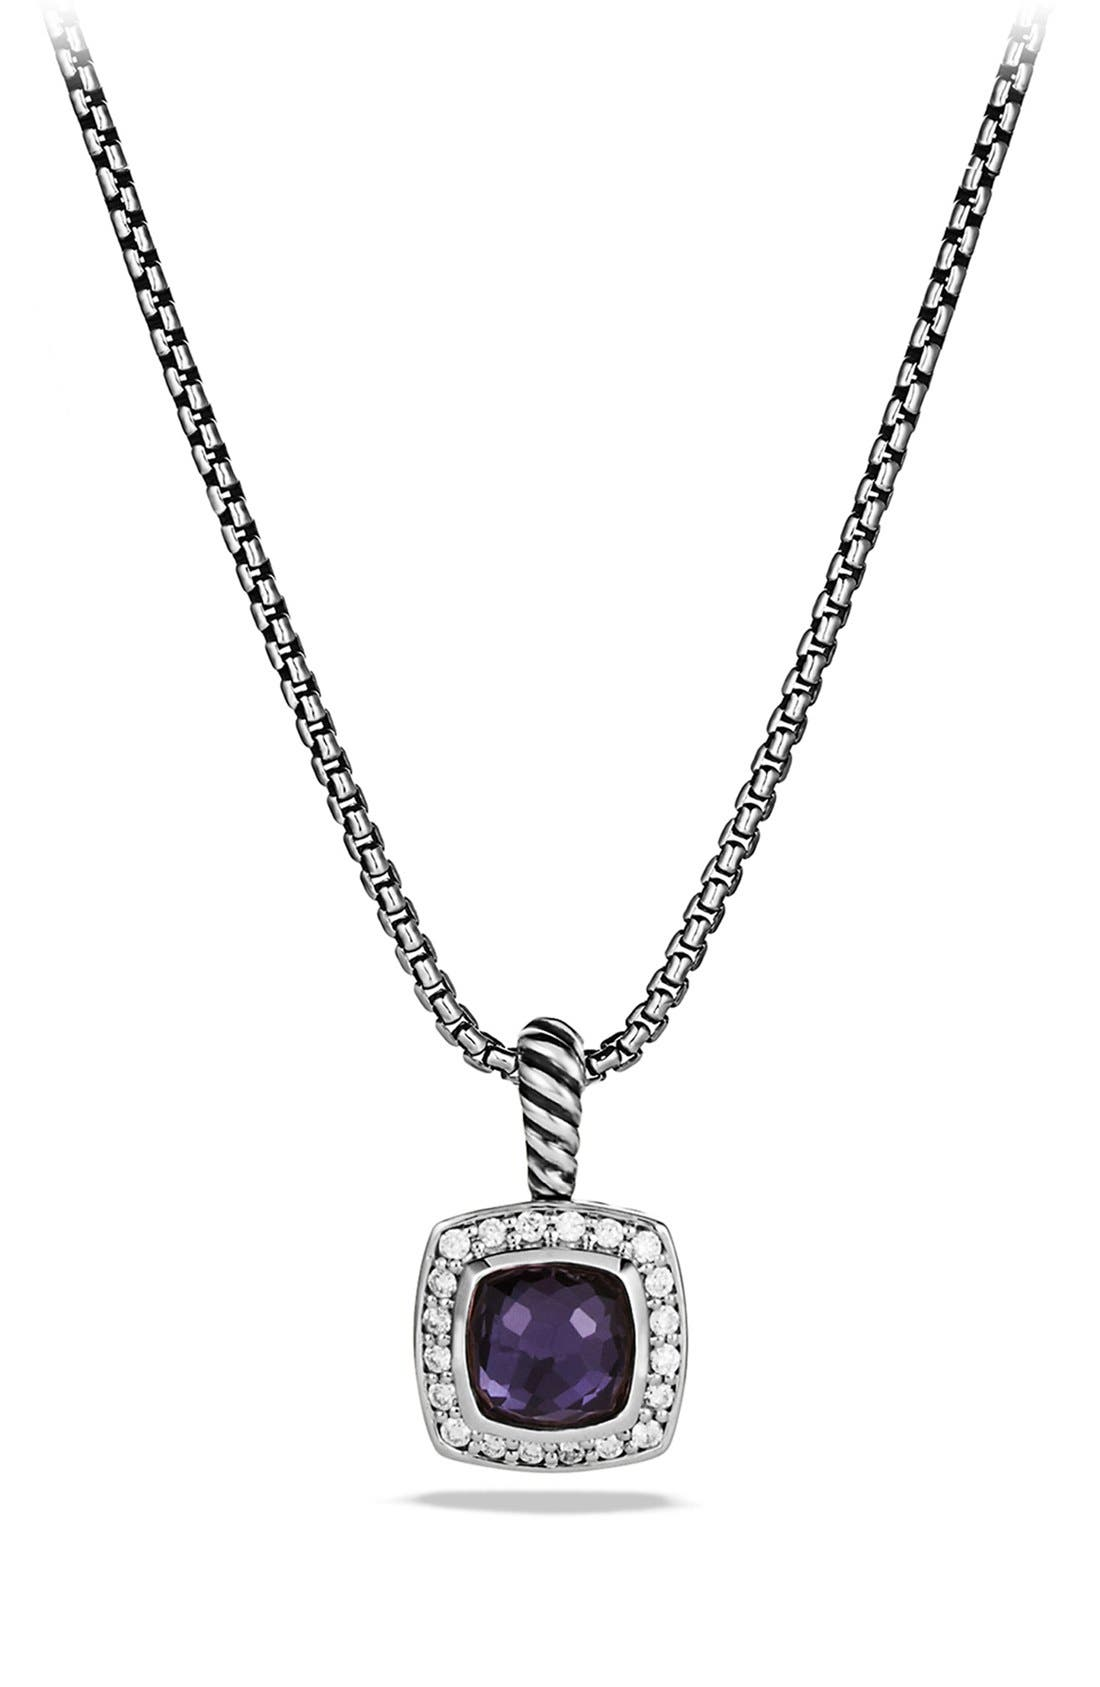 Main Image - David Yurman 'Albion' Petite Pendant with Semiprecious Stone & Diamonds on Chain